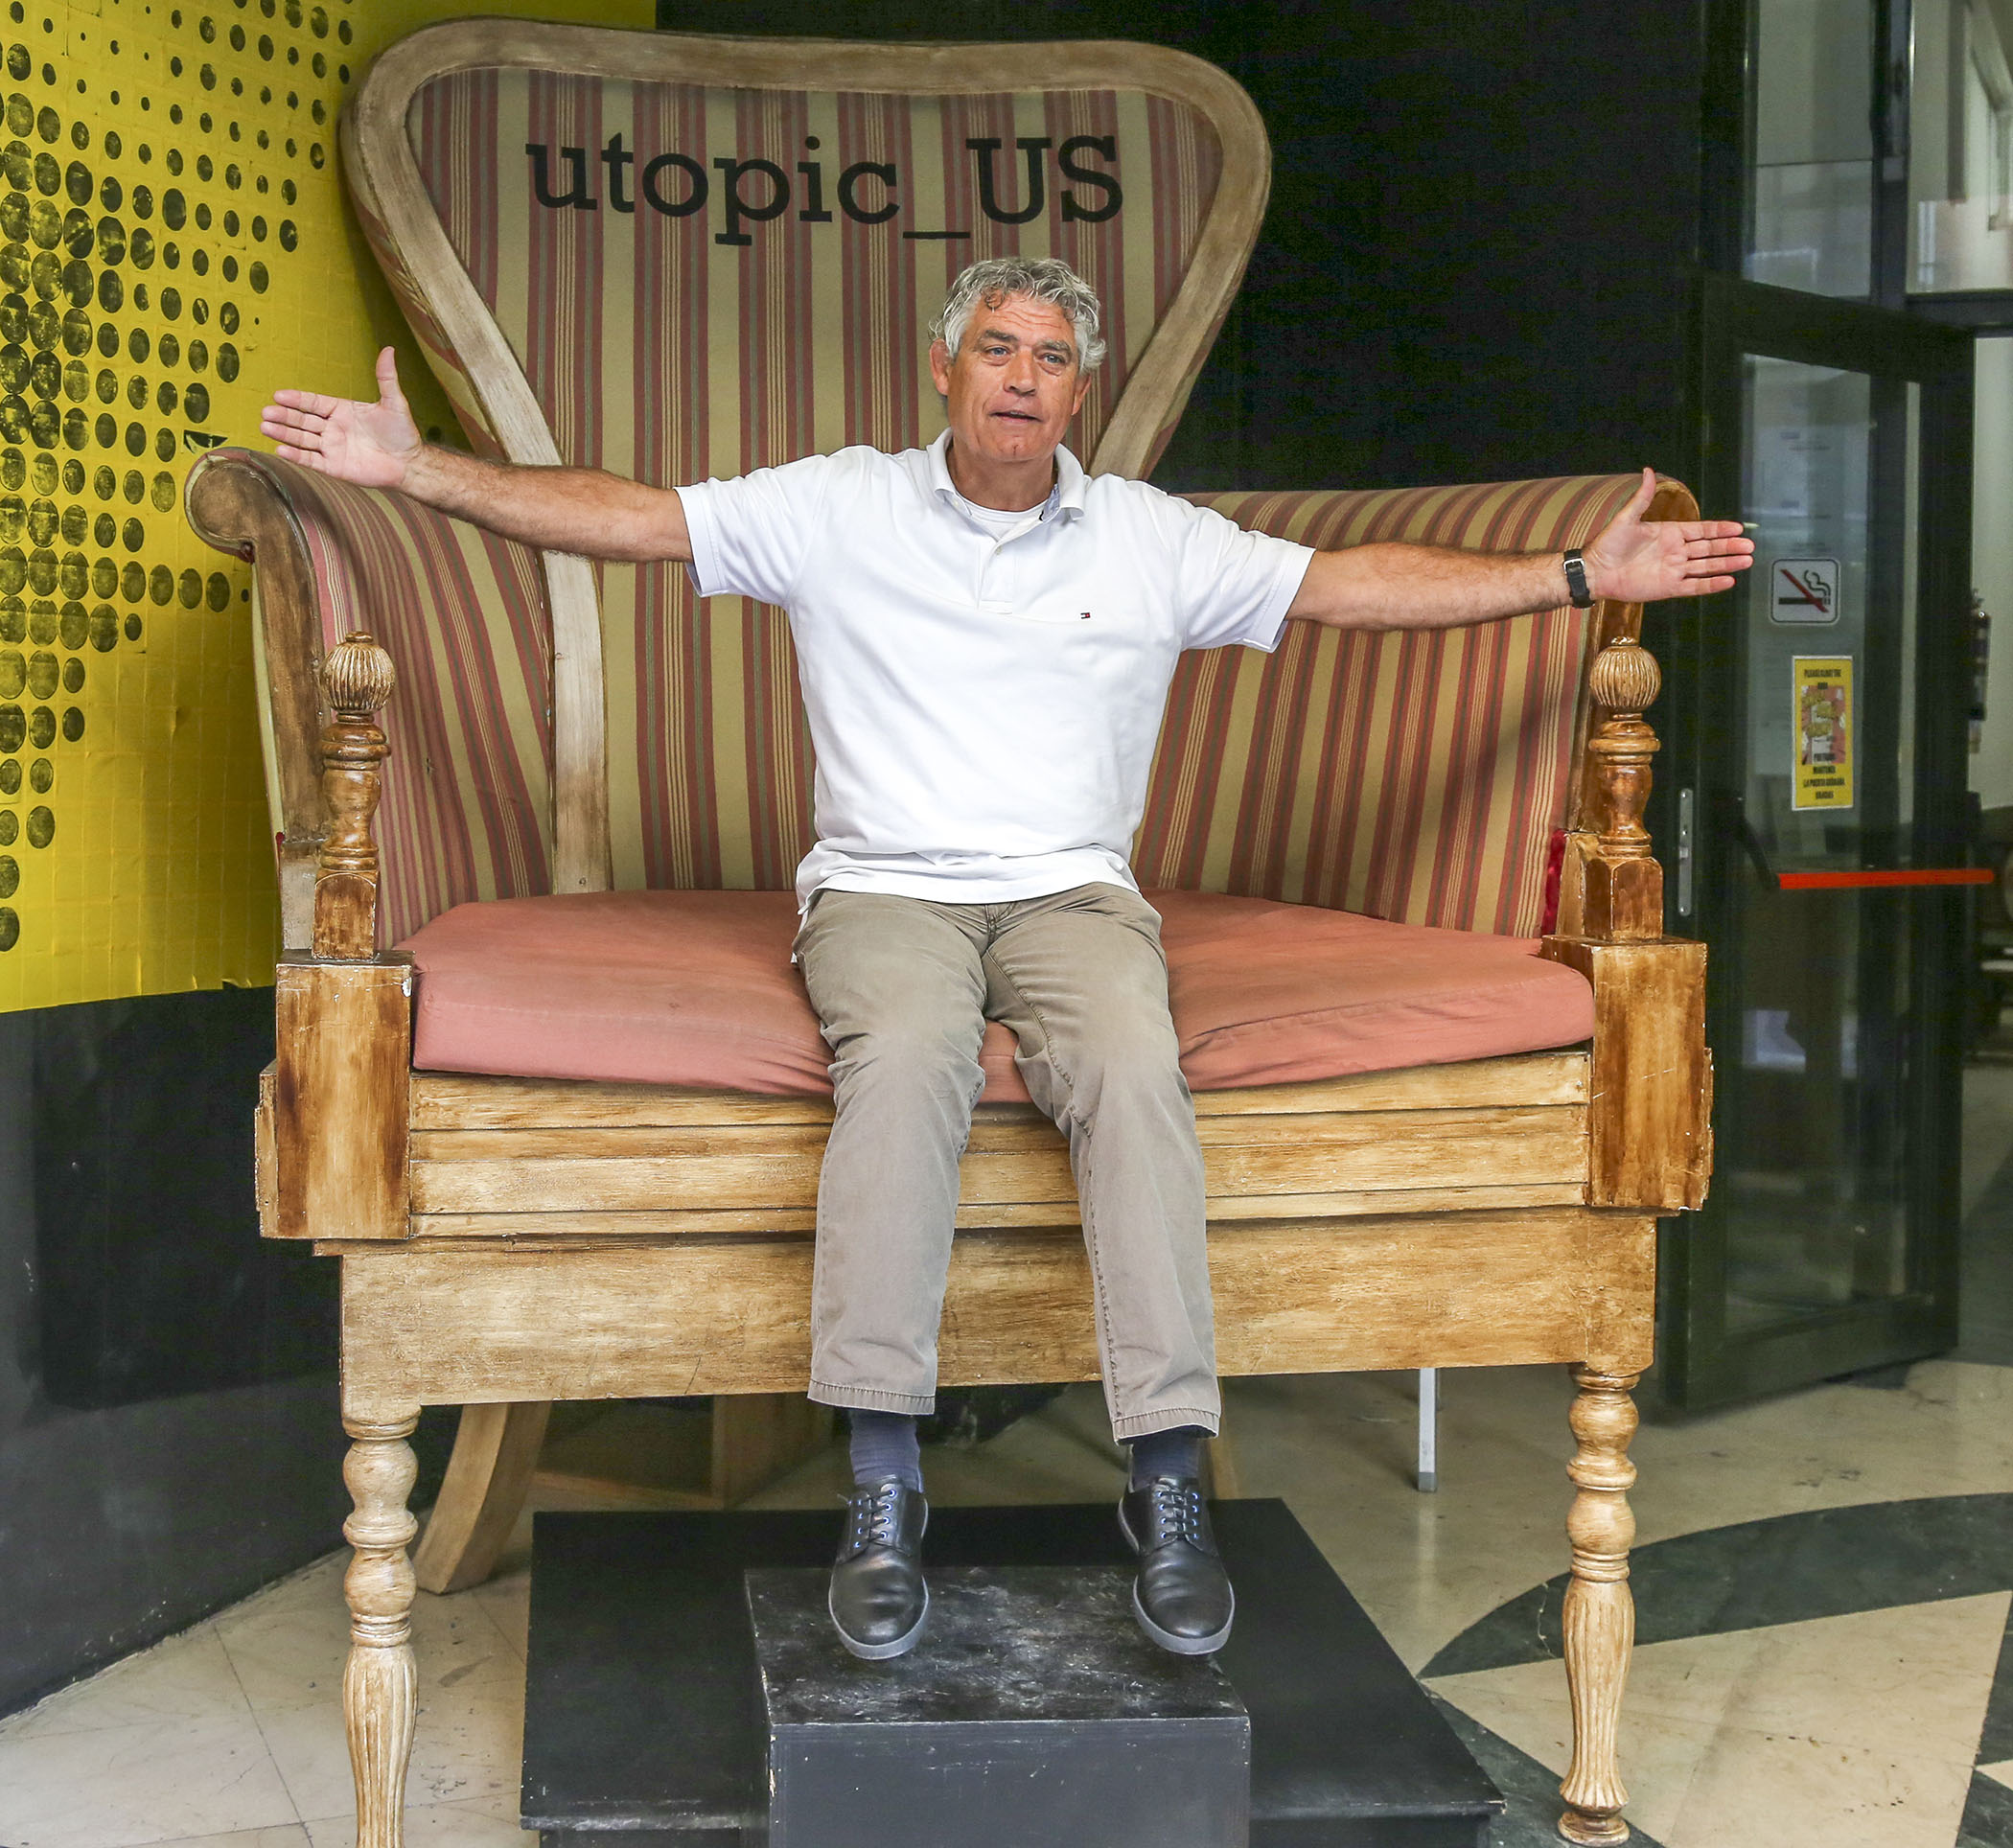 Classic Giant Chair Chairblog